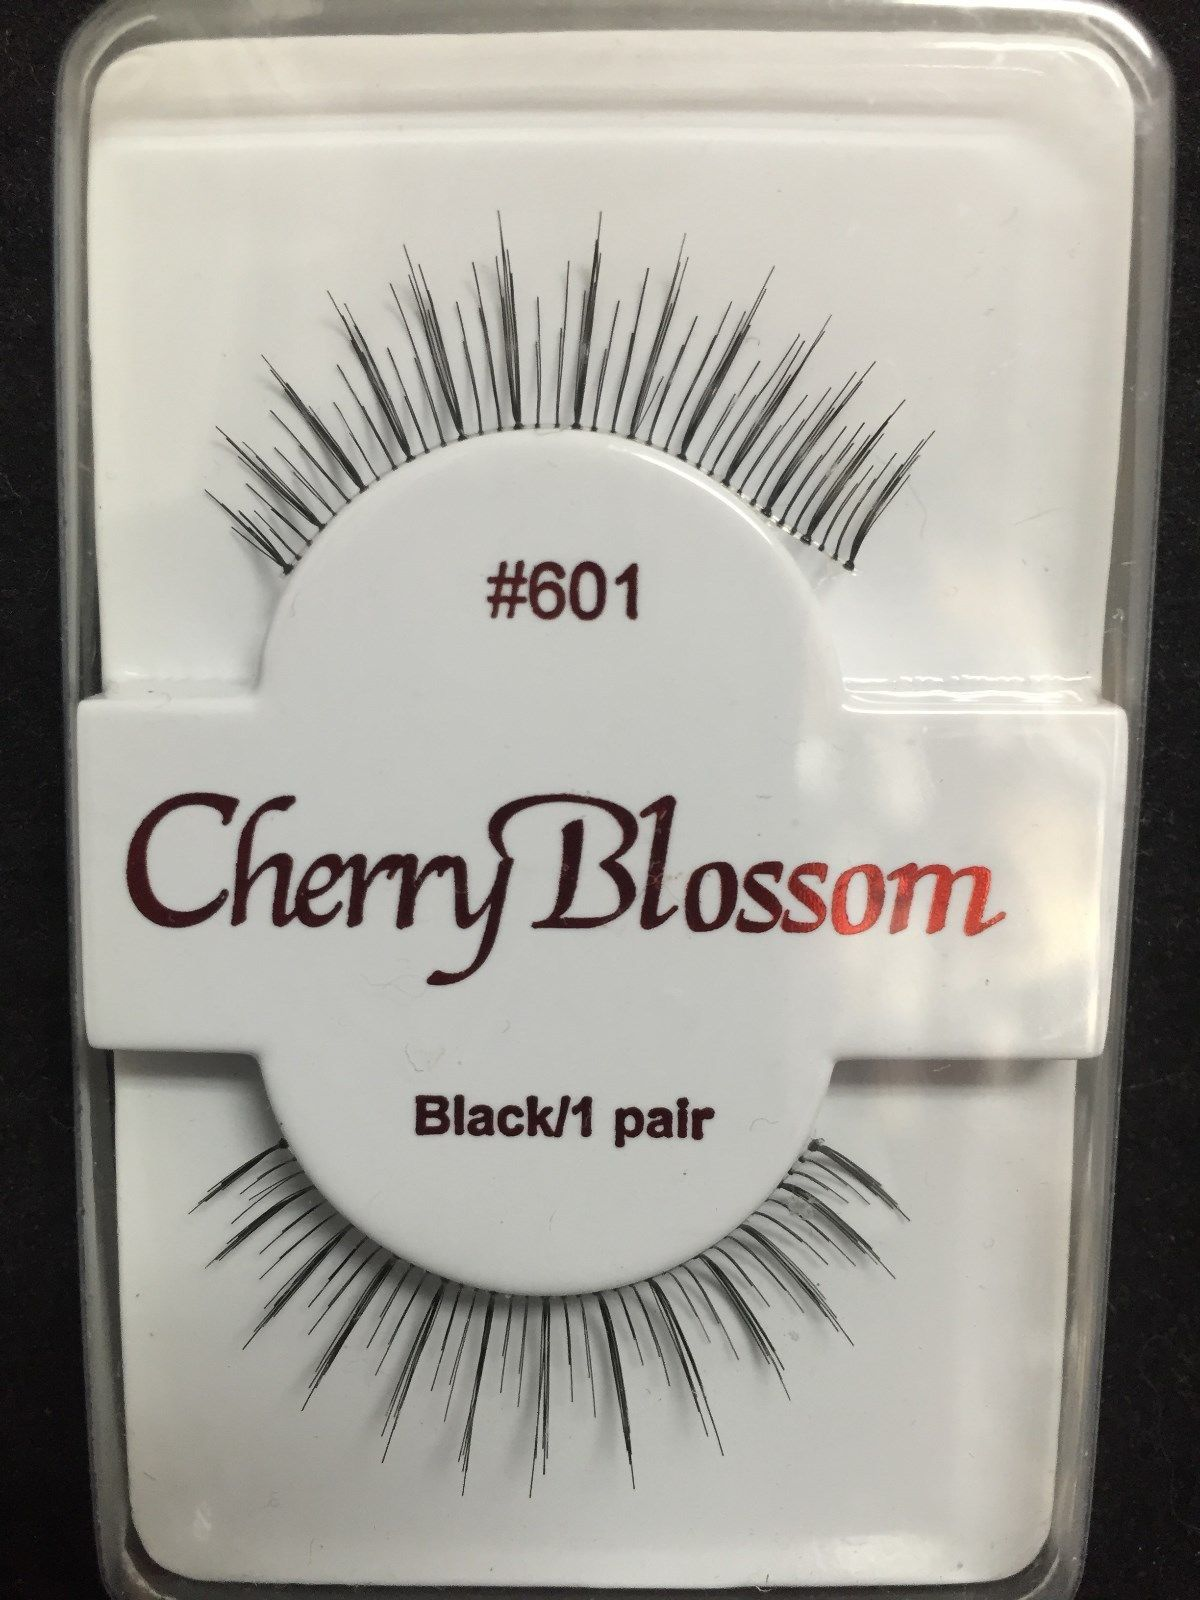 CHERRY BLOSSOM FALSE EYELASHES CHOOSE 1 TO 10 PAIRS OF QTY of  #601  LASHES